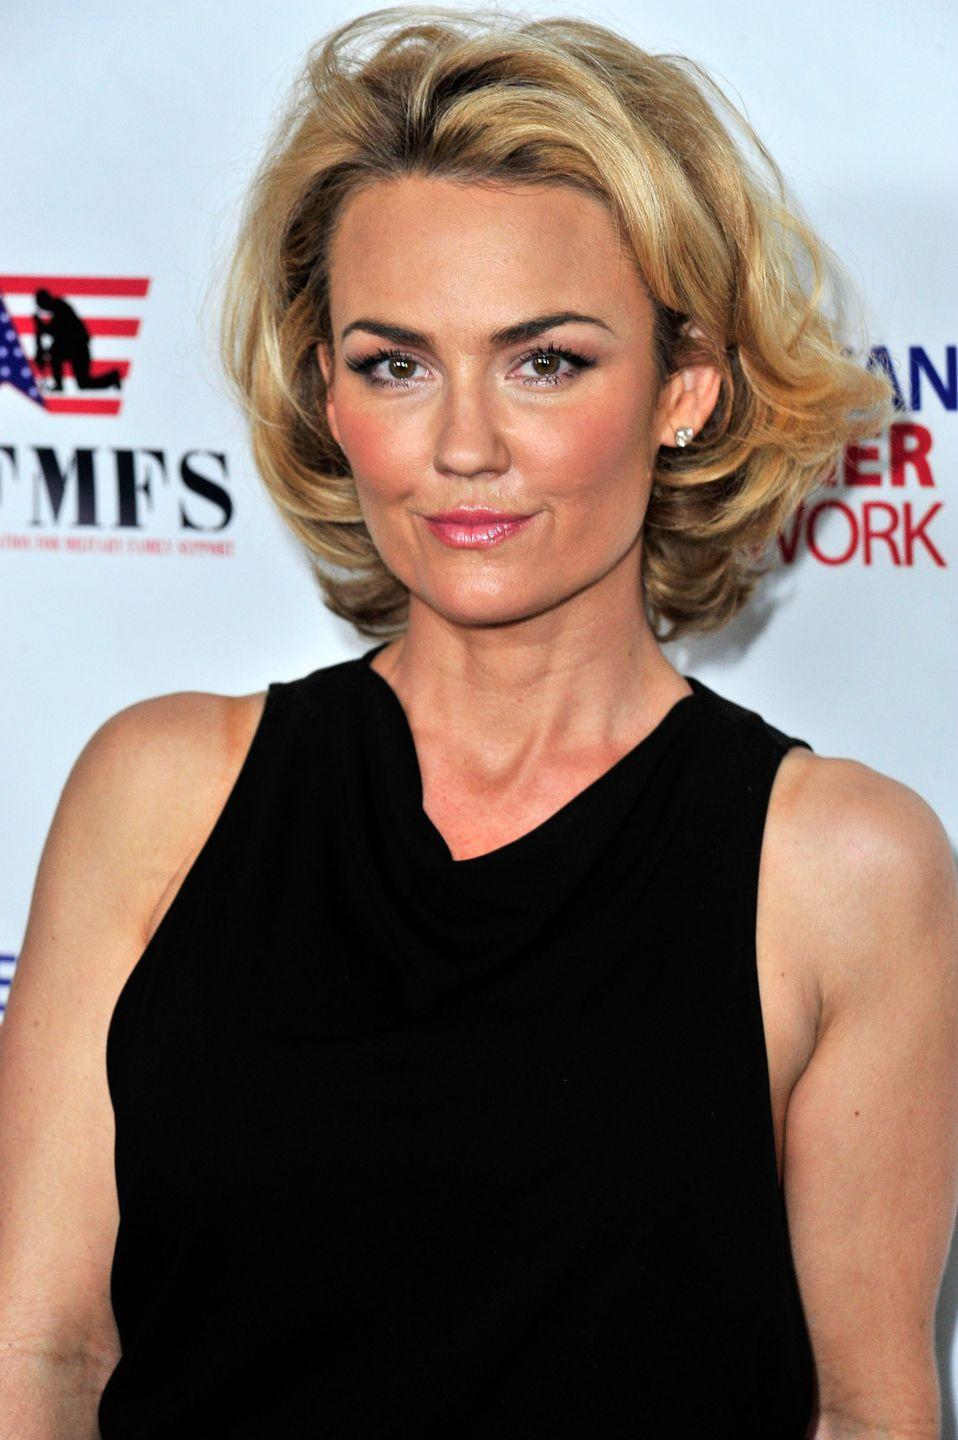 <p>After <em>Nip/Tuck</em> she played a madam on the <em>Melrose Place</em> reboot, but she hasn't appeared in many roles since 2013.</p>